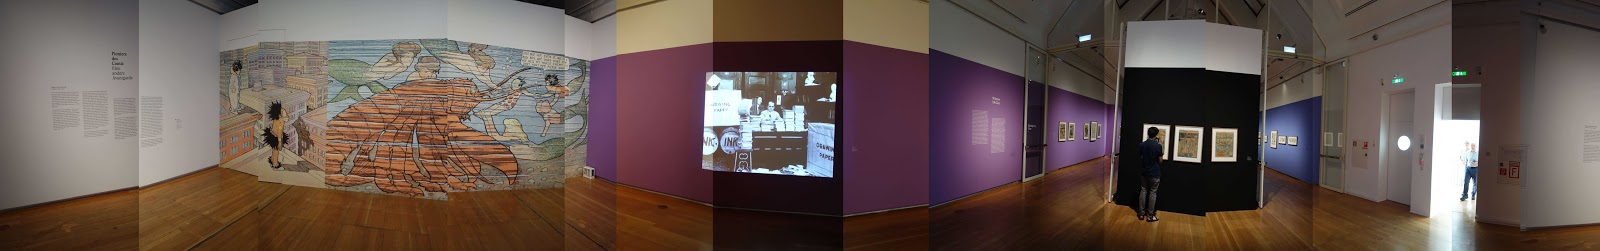 The Exhibition At Schirn Kunsthalle In Frankfurt Am Main Germany Upon Entering Starts With First Winsor McCay Animation